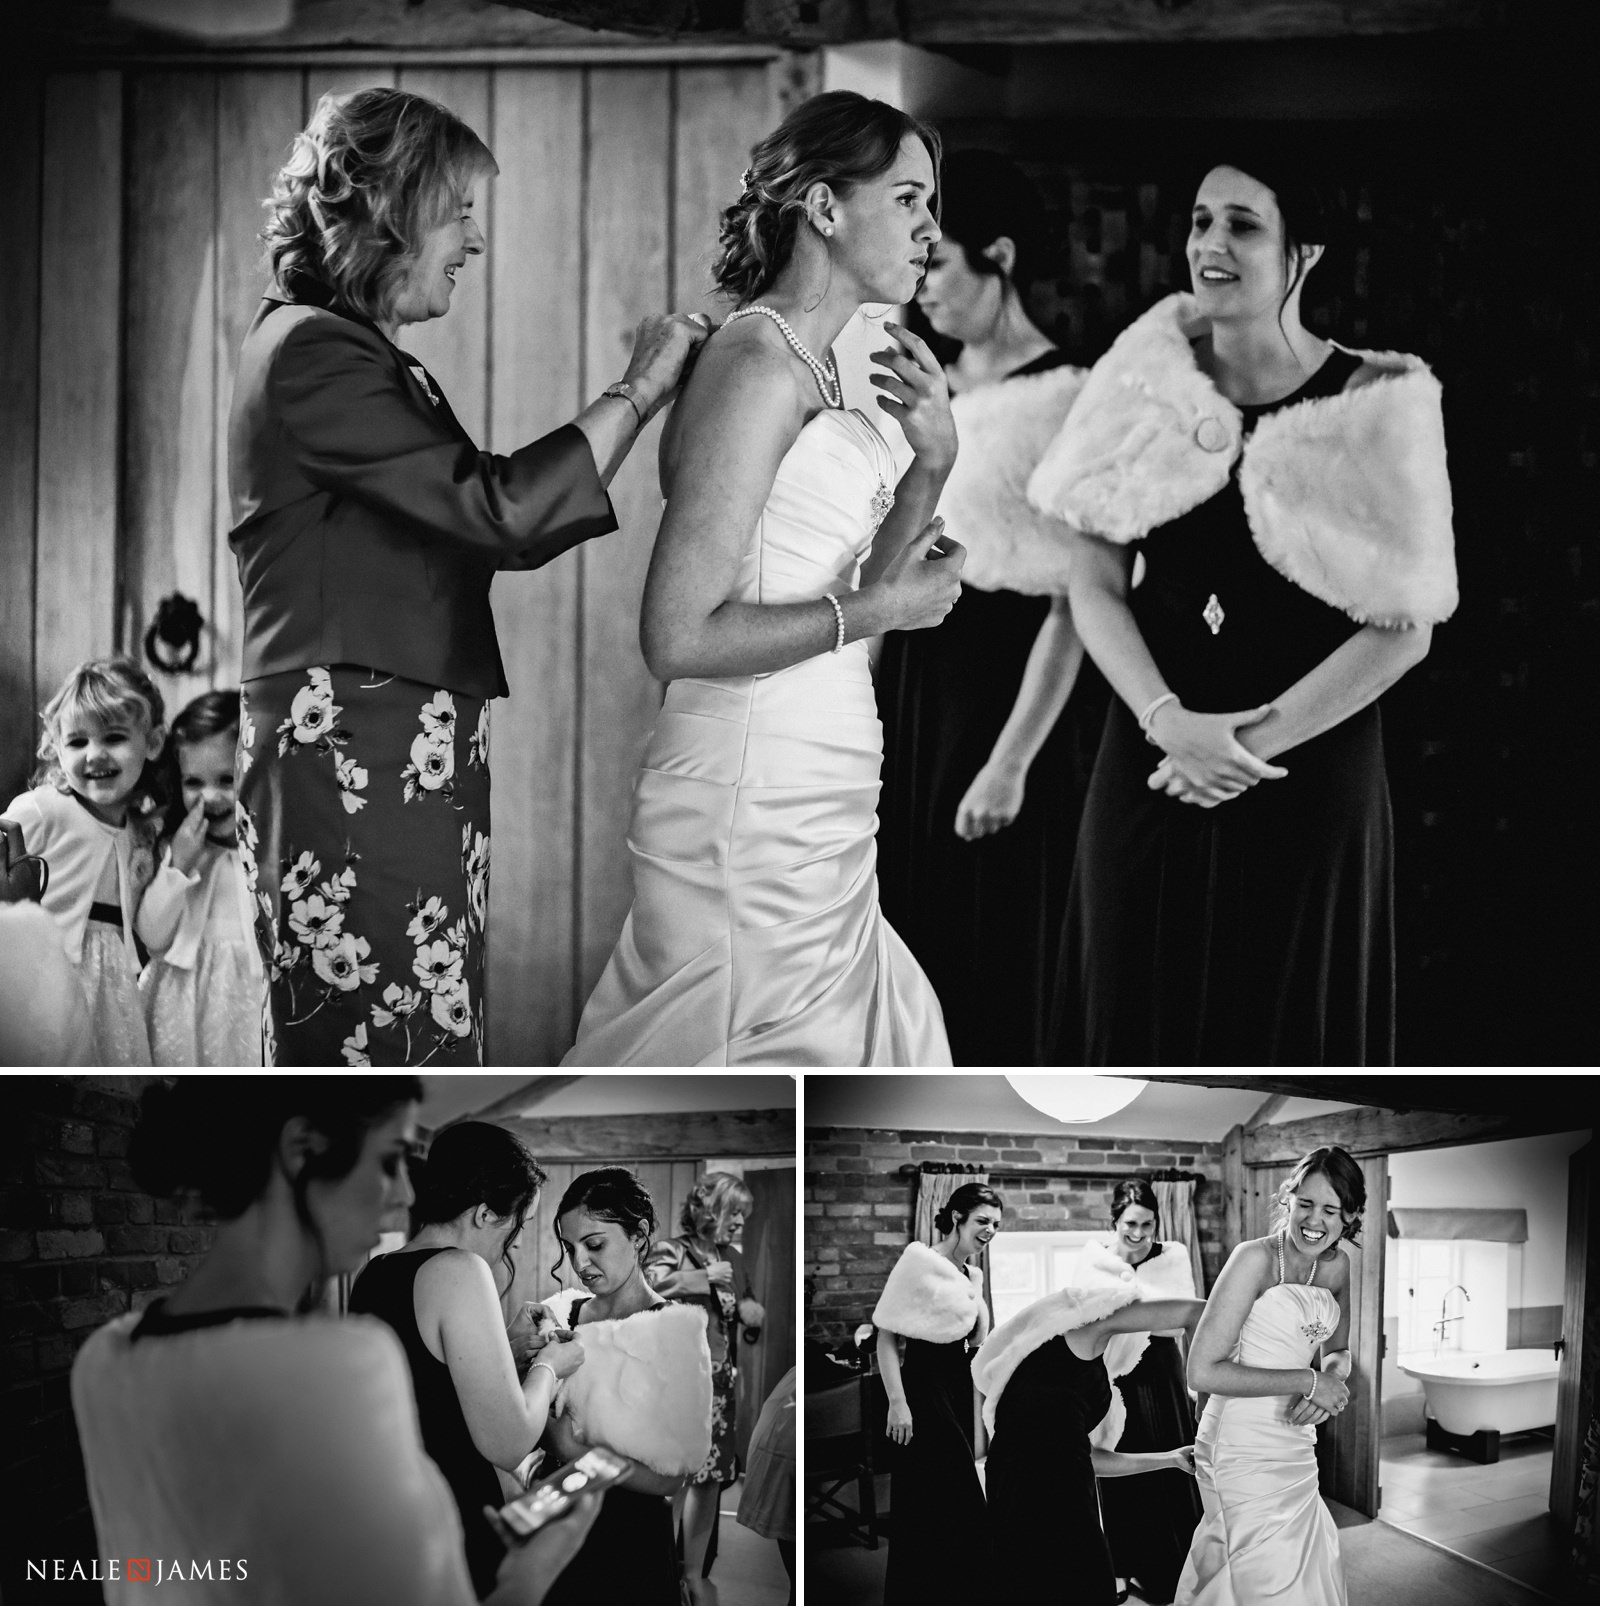 A selection of black and white images of a bride and her maids before her winter wedding at Wasing Park